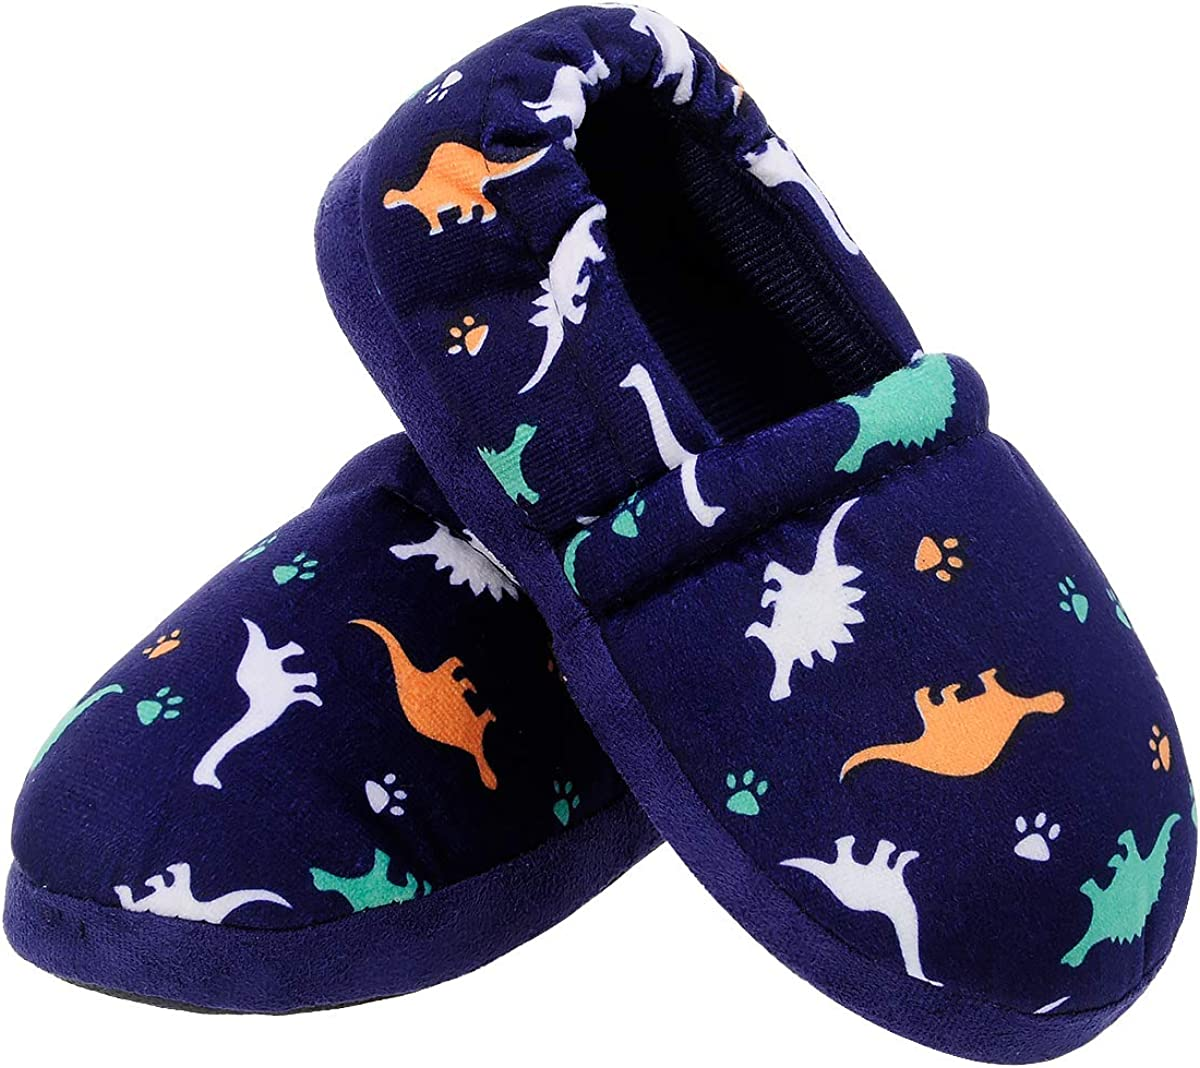 MIXIN Little Kids Boys Over item handling Indoor House Soft Slippers Warm M Minneapolis Mall Slip-on